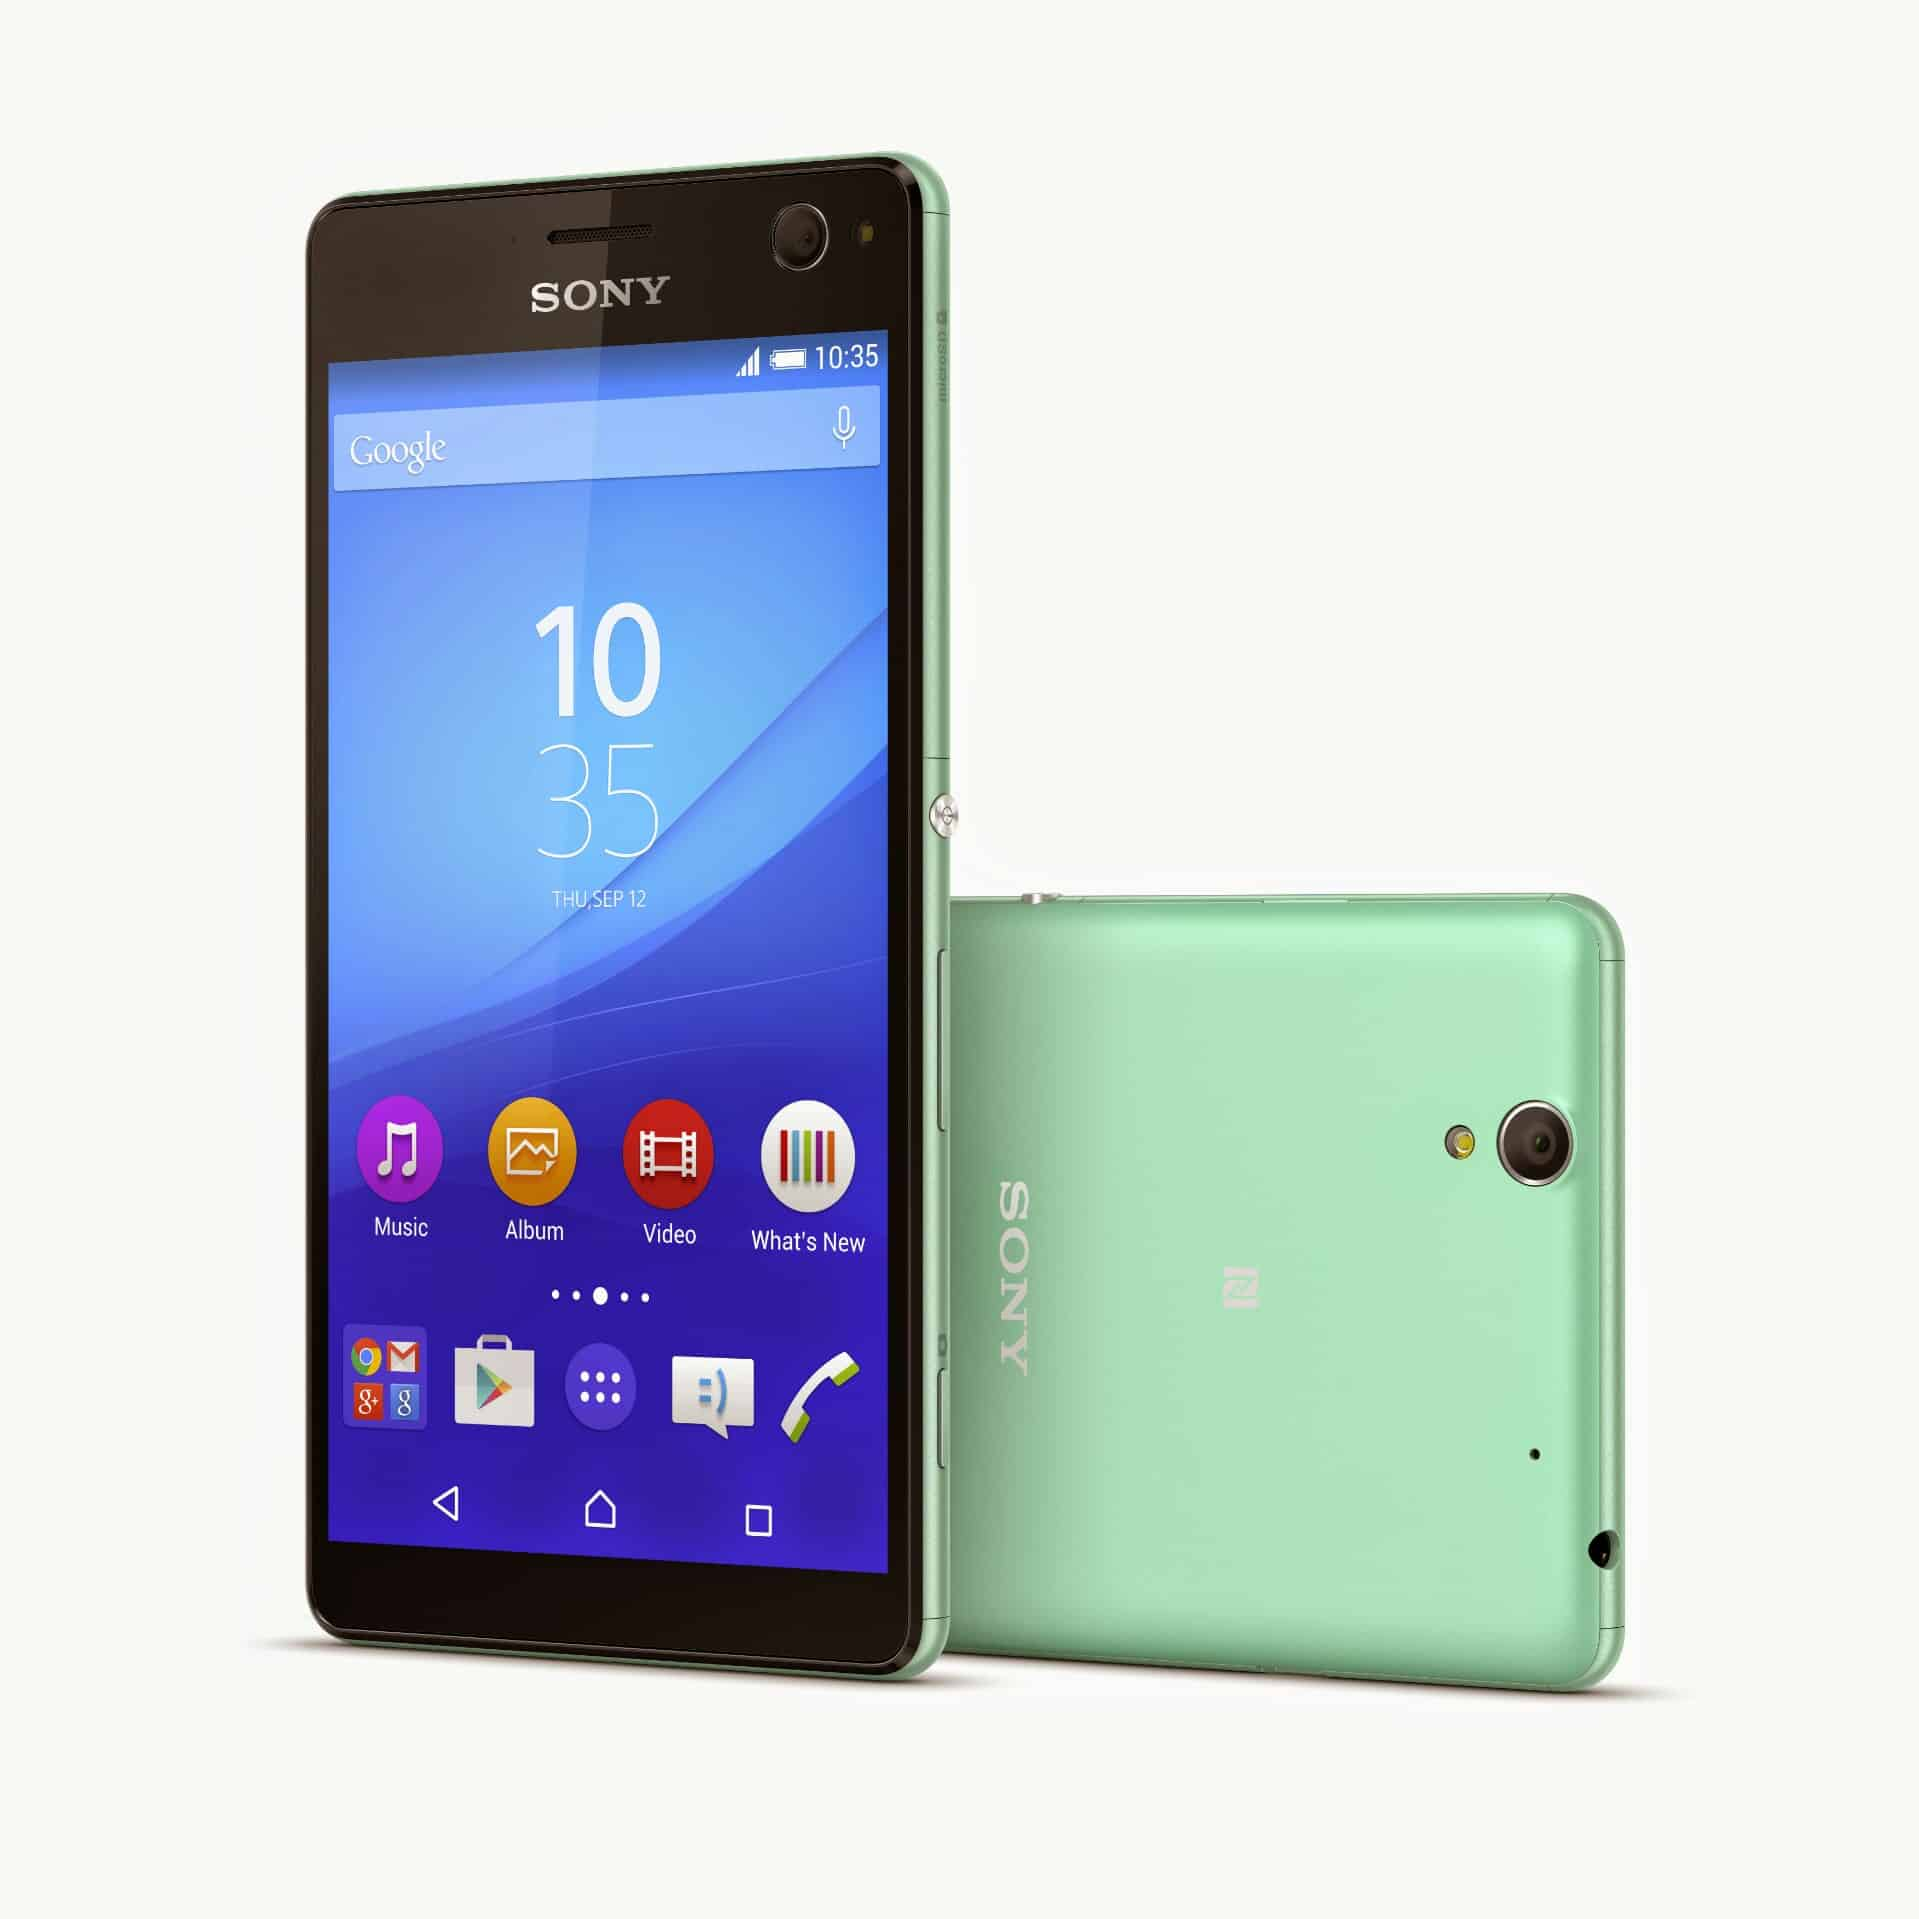 Sony Xperia C4 press images 9